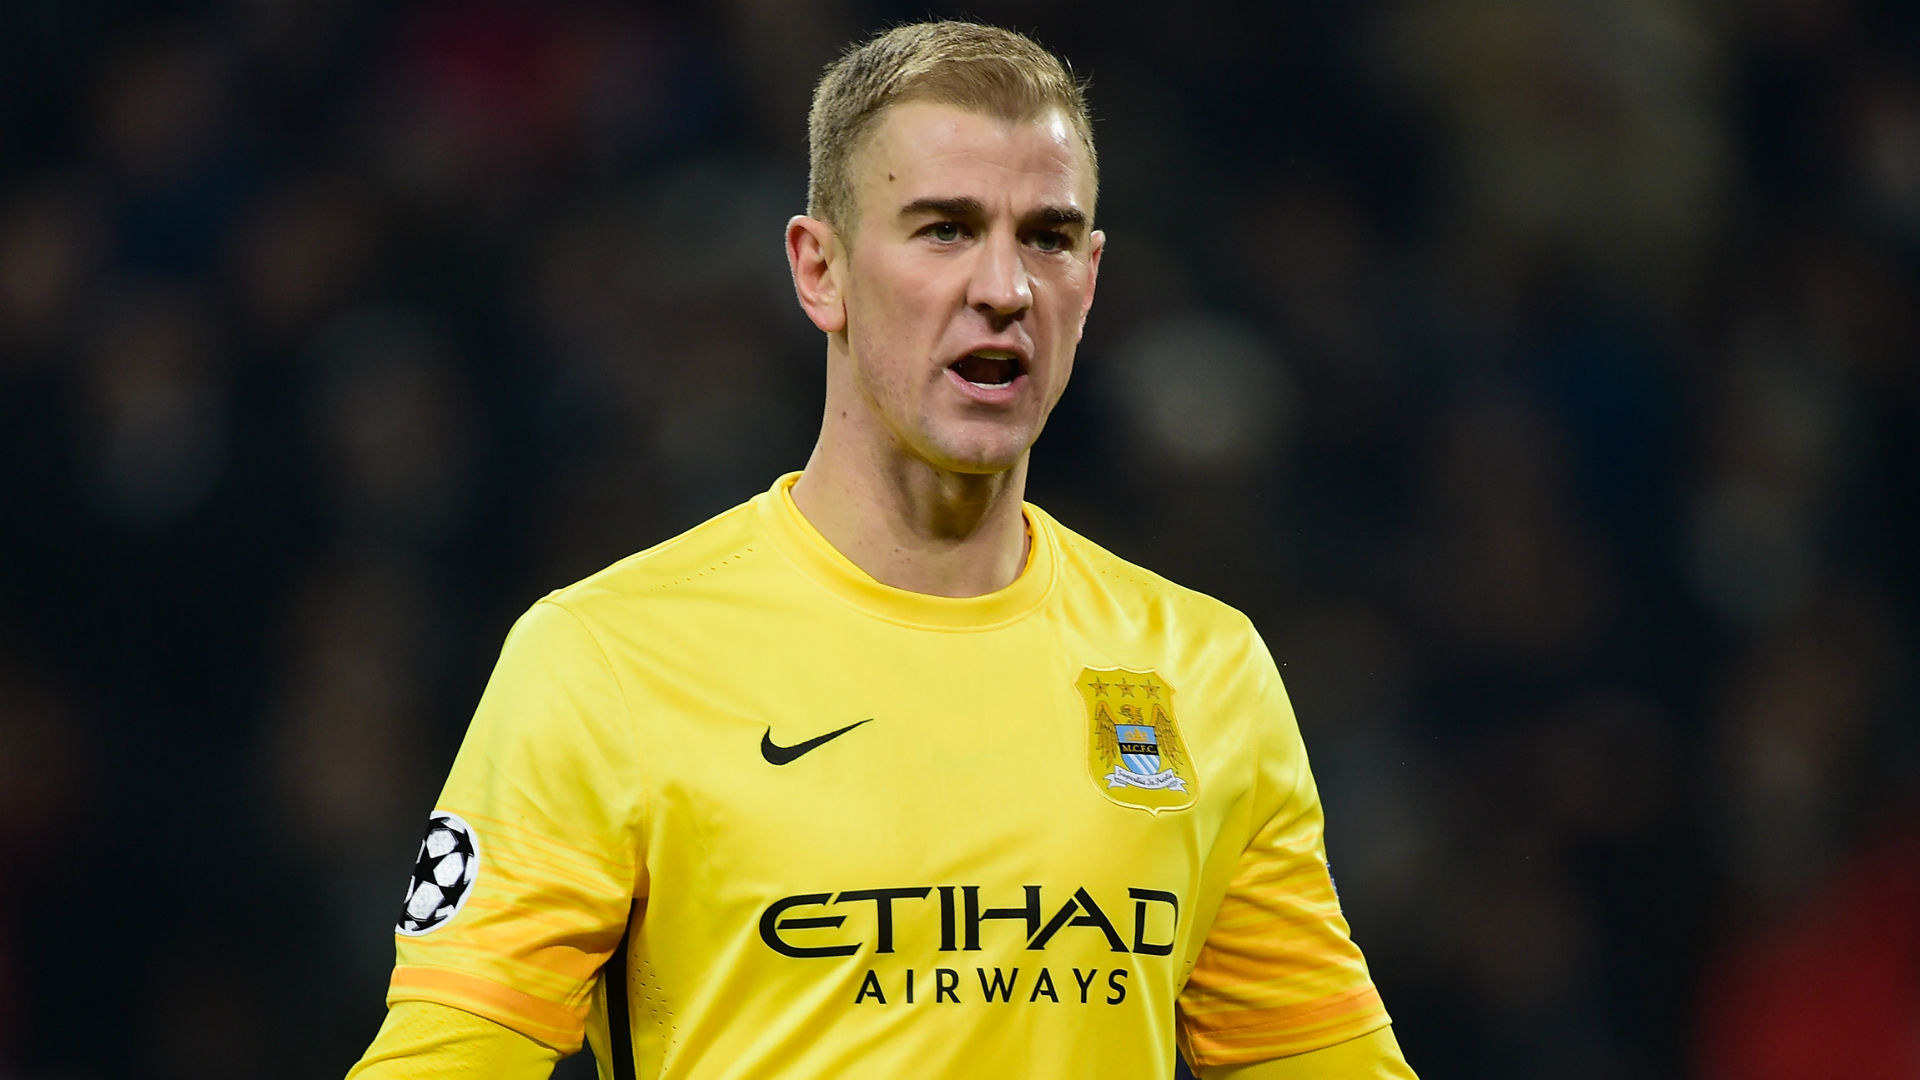 Joe Hart Believes Manchester City Can Win the Champions League This Season